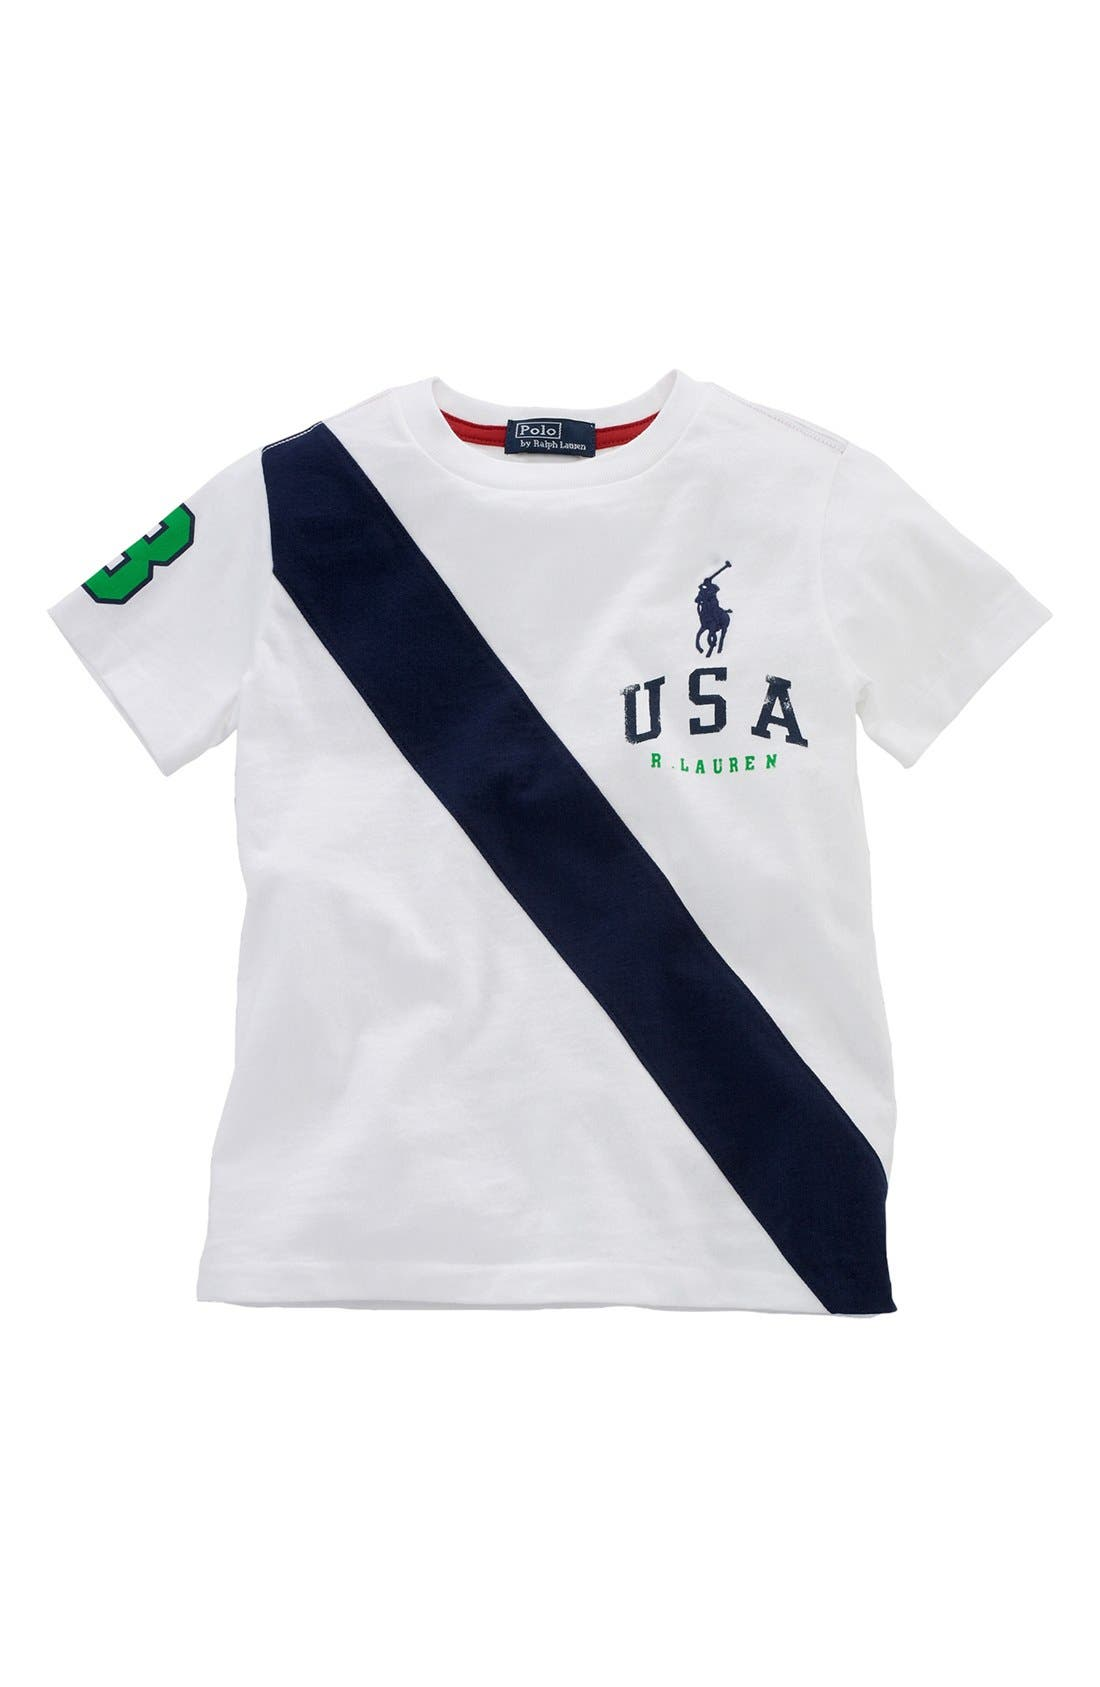 Main Image - Polo Ralph Lauren 'USA Banner' T-Shirt (Toddler)